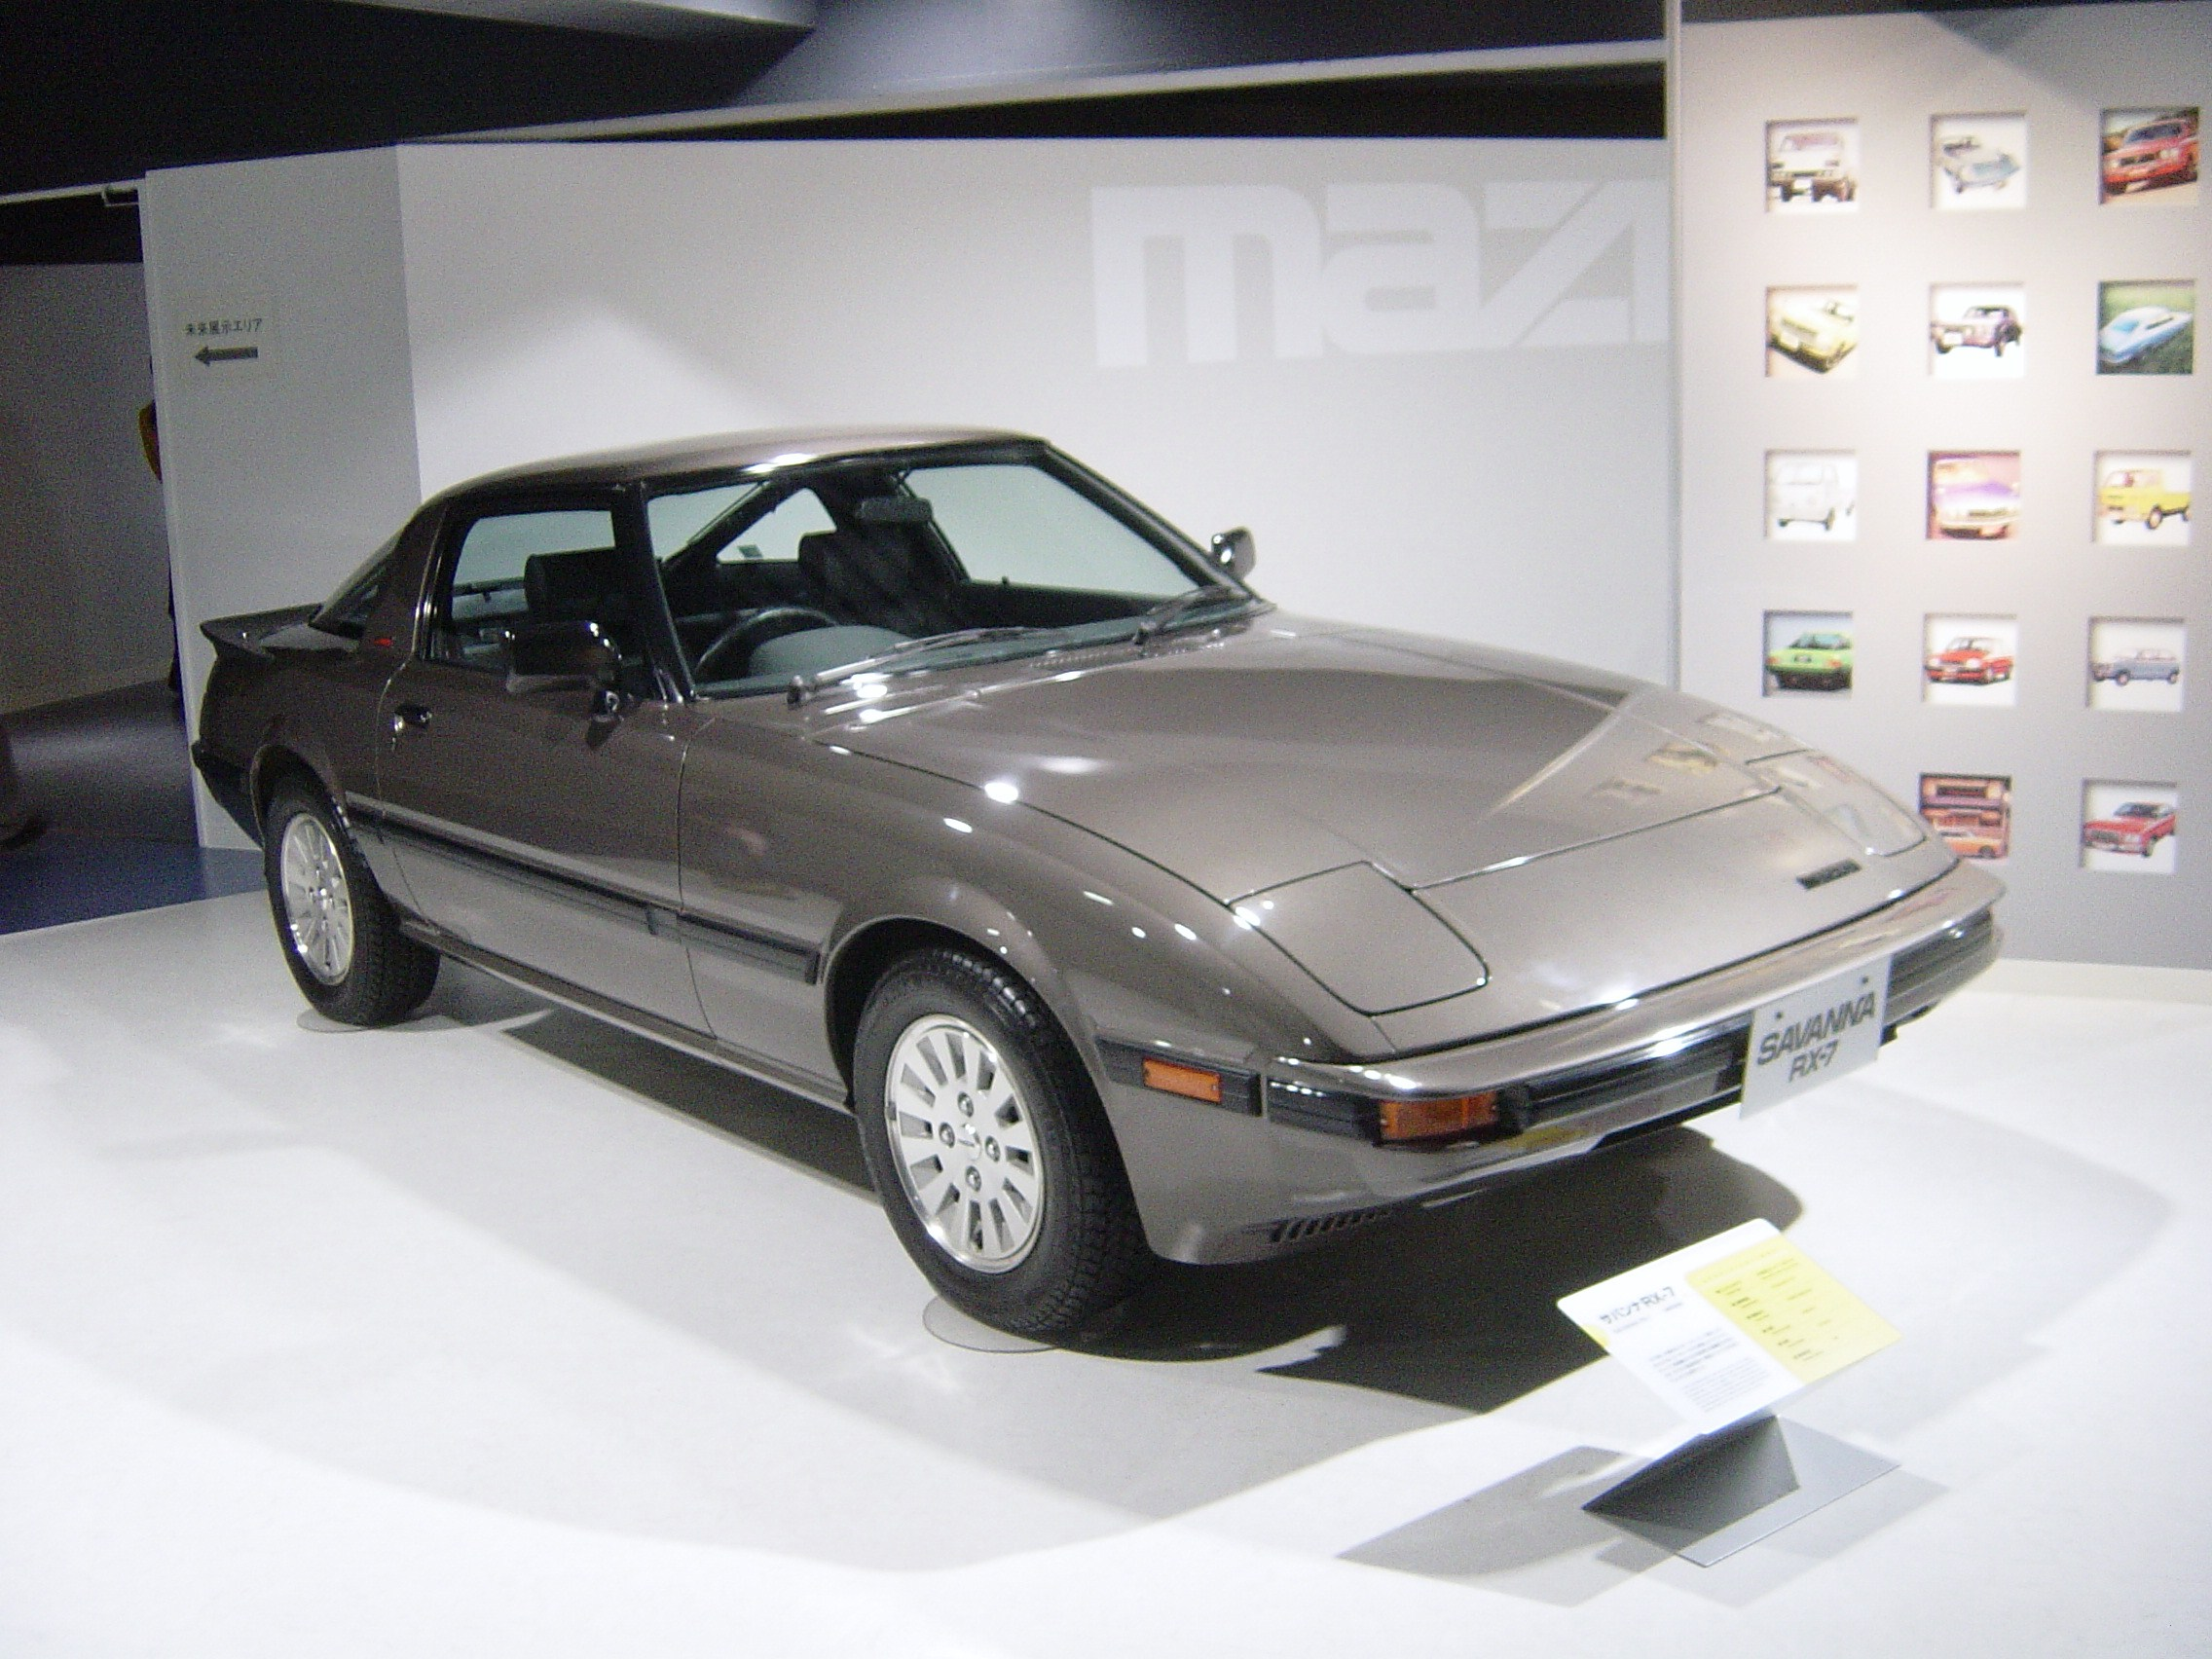 Mazda Rx7 1980 Review Amazing Pictures And Images Look At The Car Rx 7 Wiring Schematics Blue